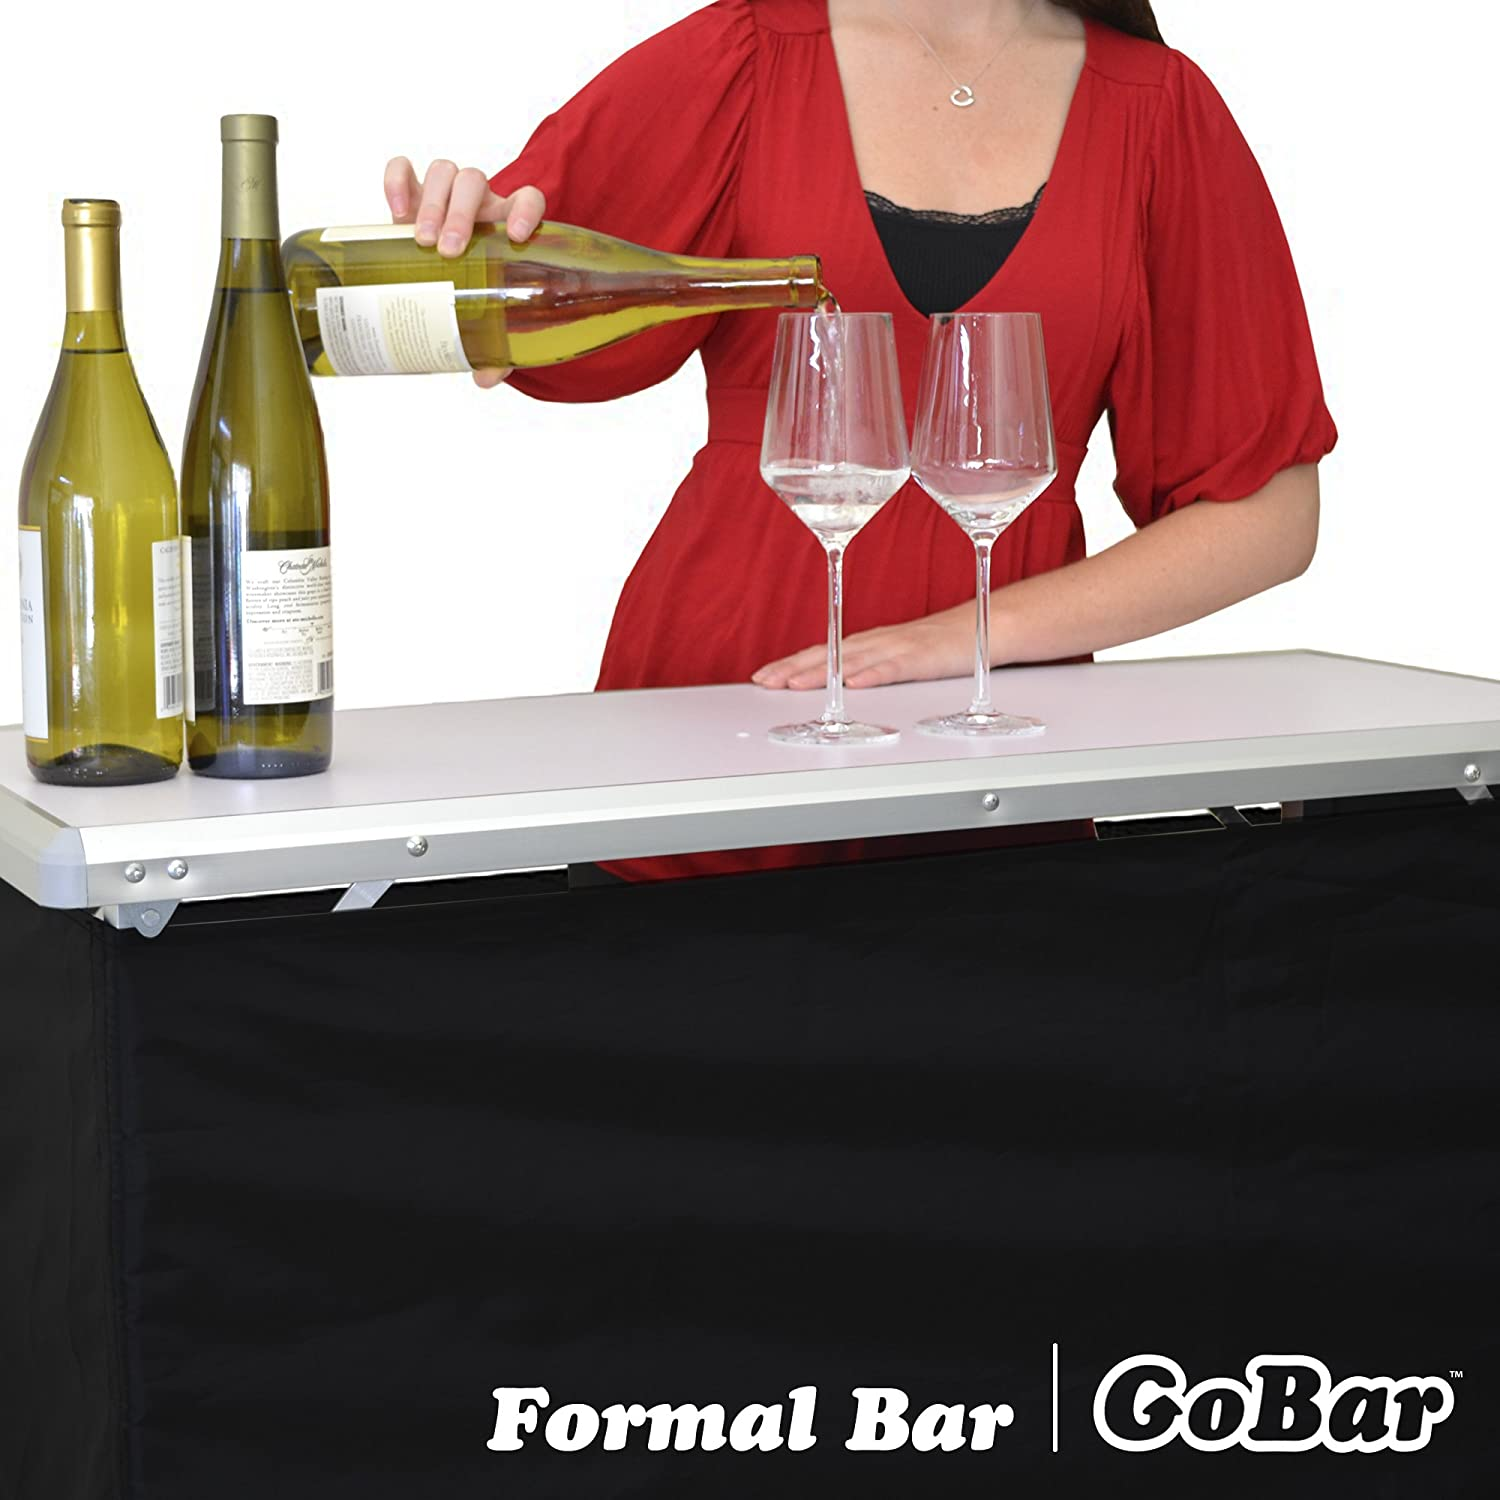 GoPong Portable High Top Party Bar Table with Shelf – 15L x 39W x 36H – Includes 3 Front Skirts and Carrying Case